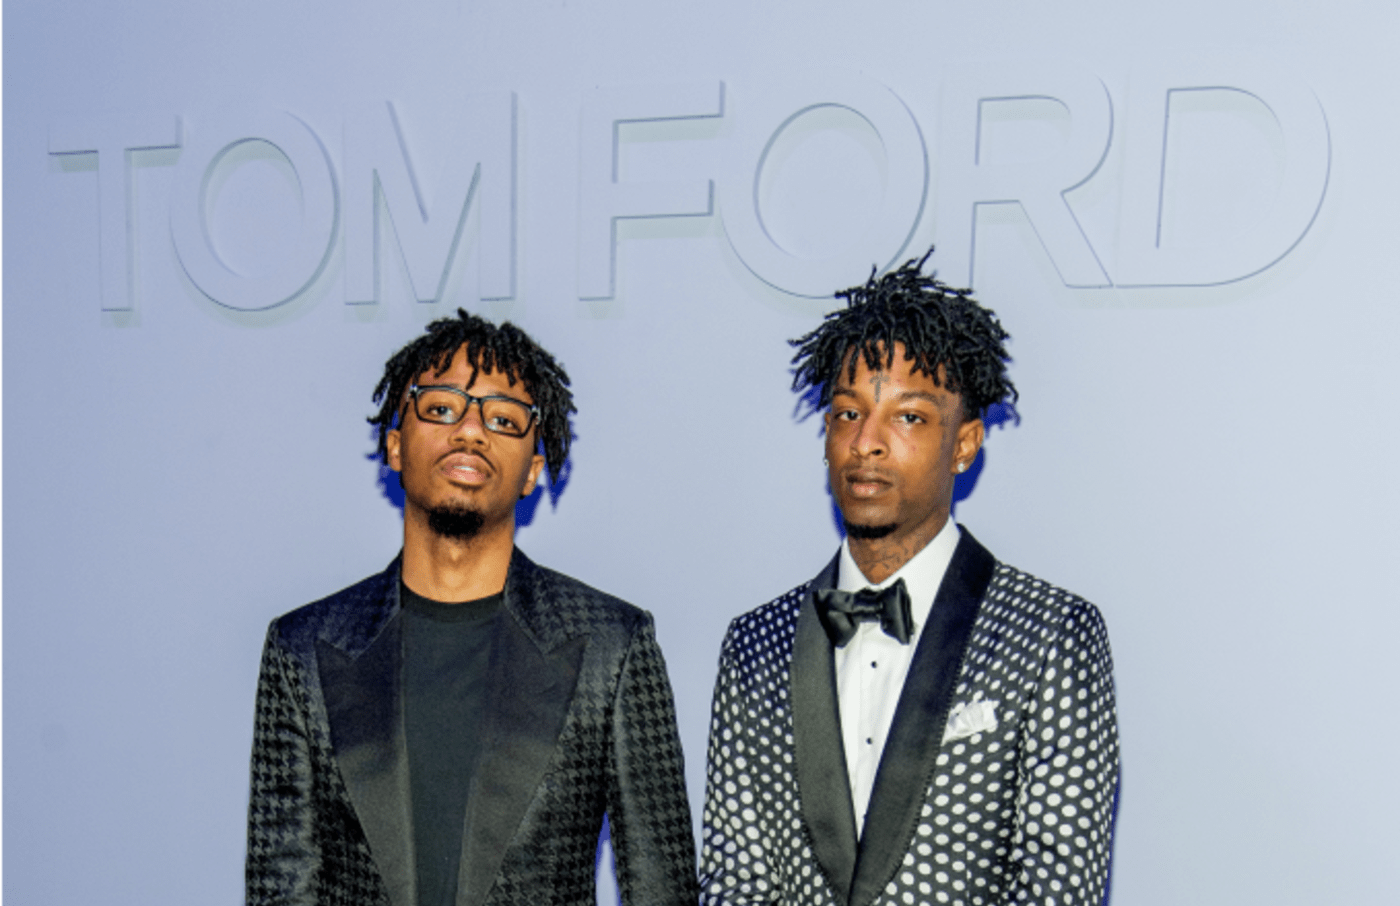 Metro Boomin and 21 Savage attends the Tom Ford Fall/ Winter 2018 Men's Runway Show